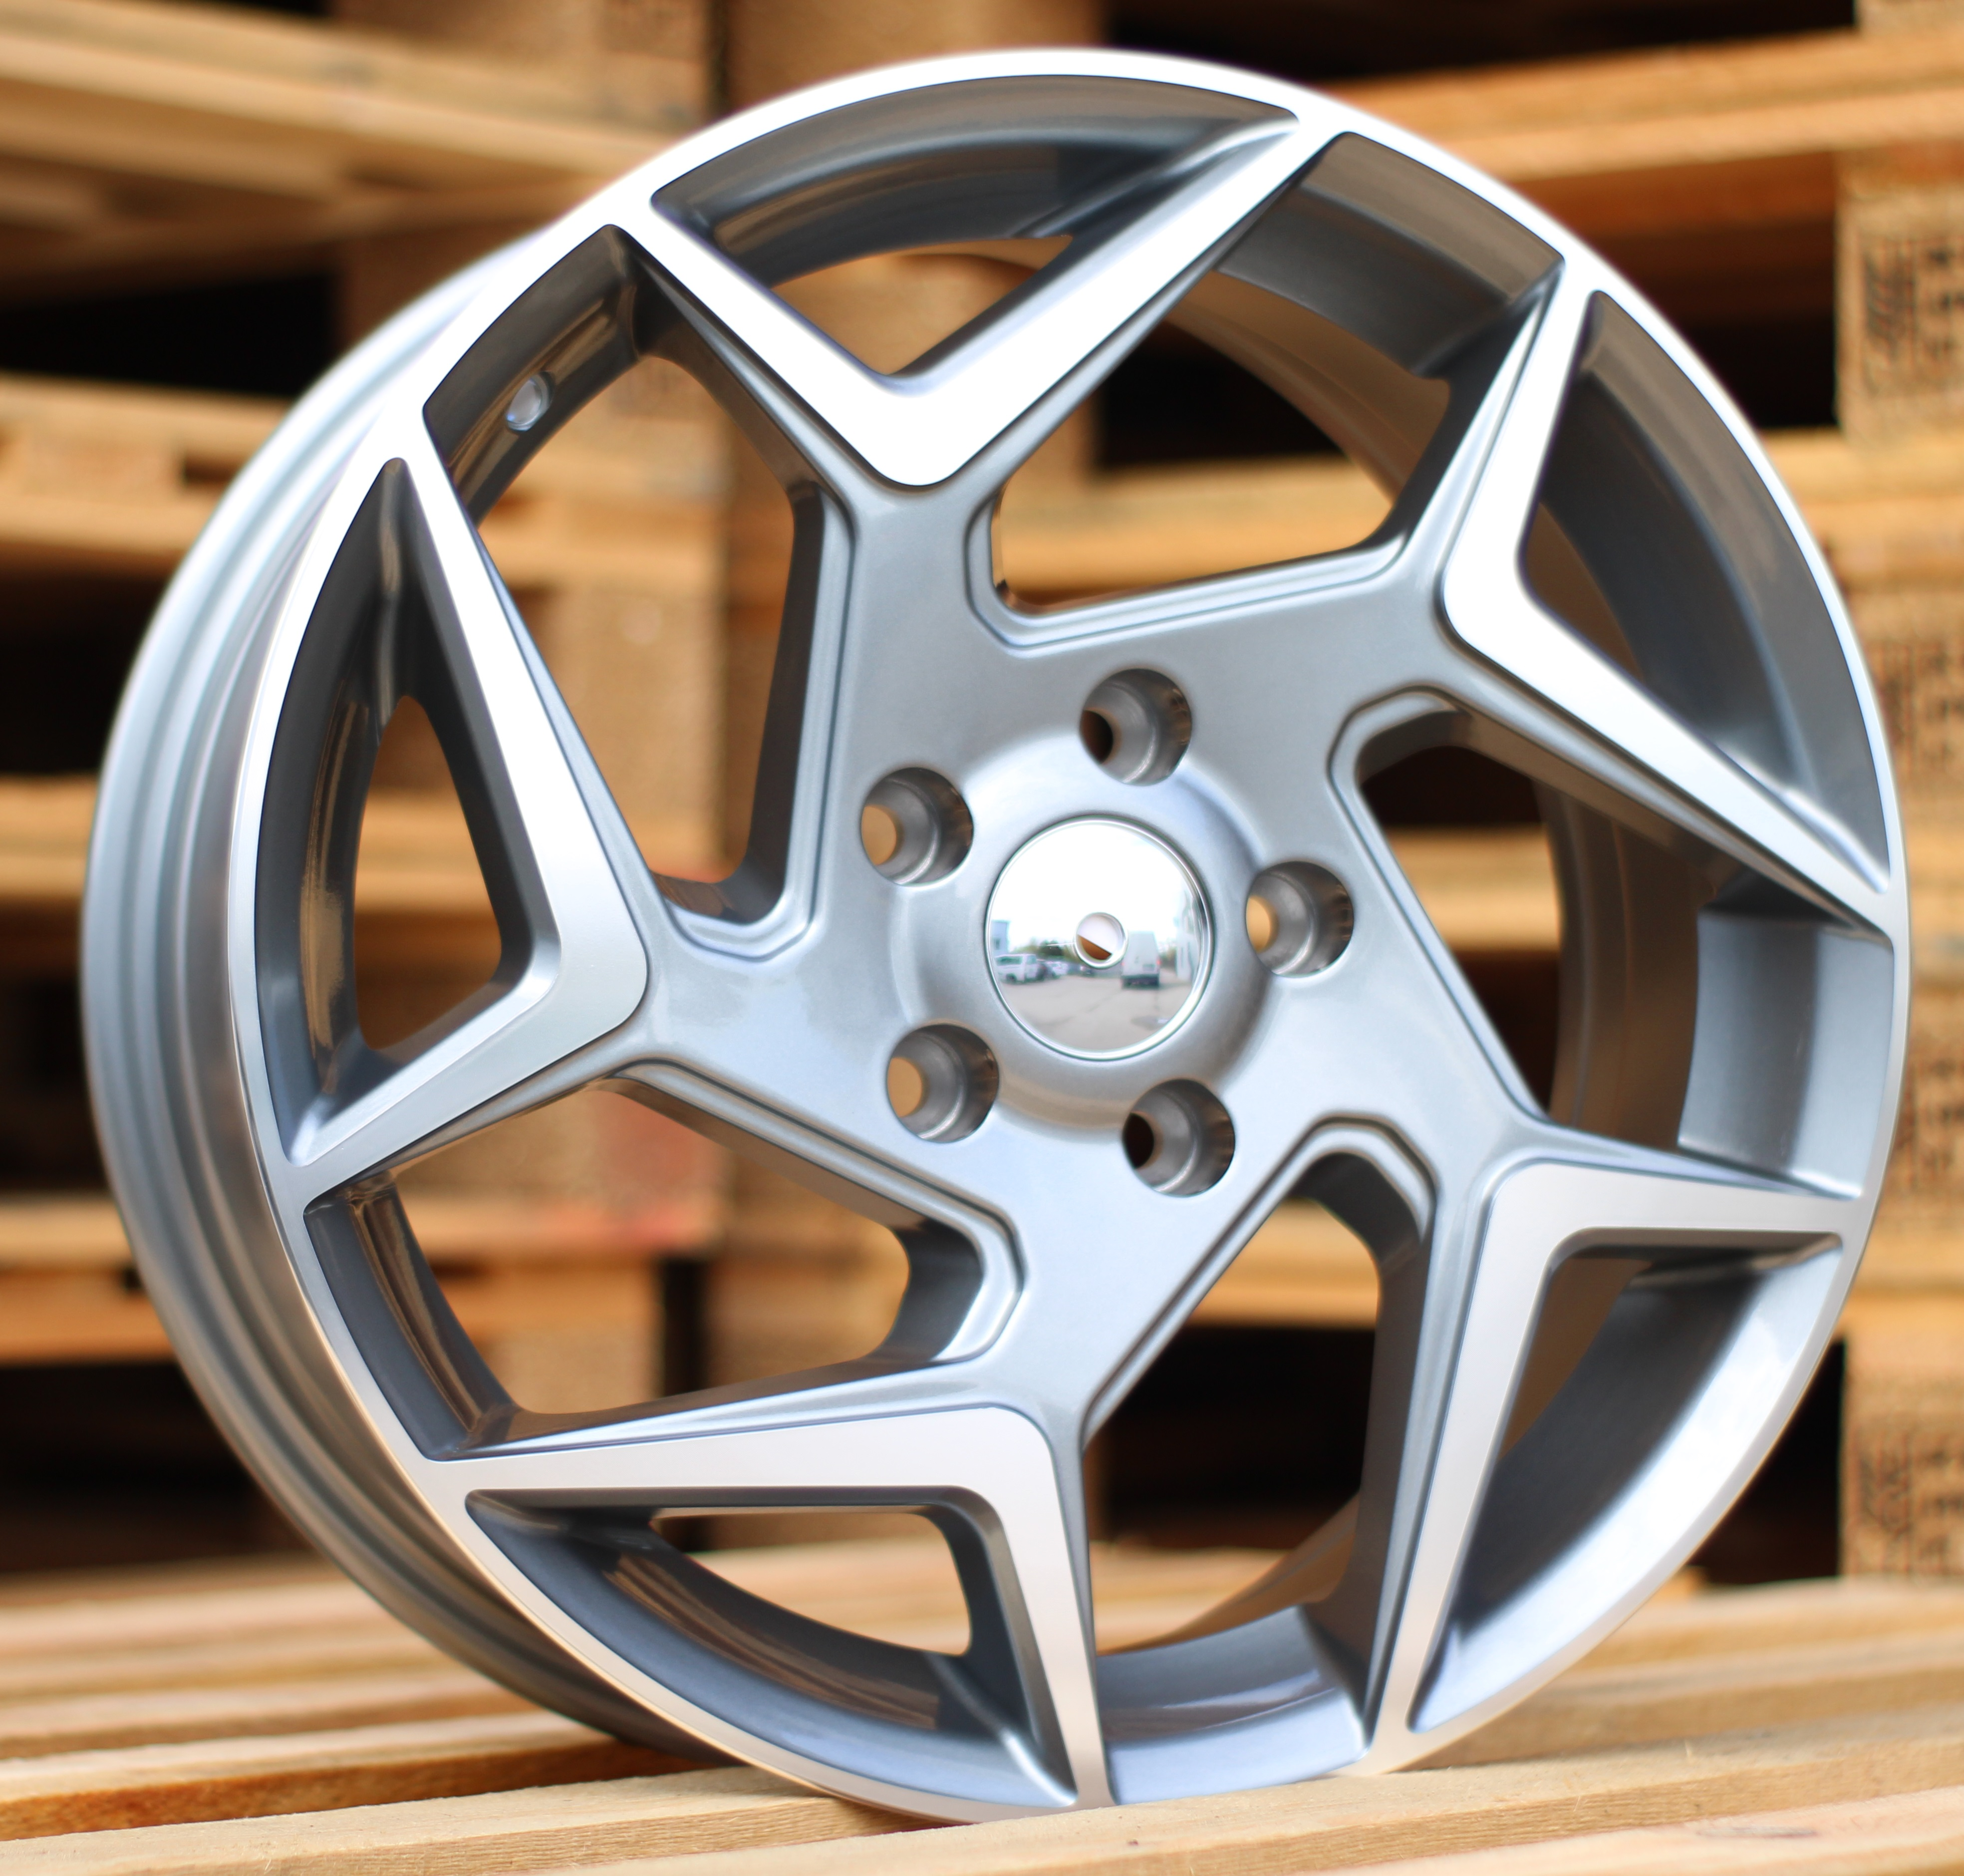 F15X6.5 4X108 ET40 63.3 XFE172 (BK5577) MG+Powder Coating RWR FOR (+2eur) (L6)## 6.5x15 ET41 4x108